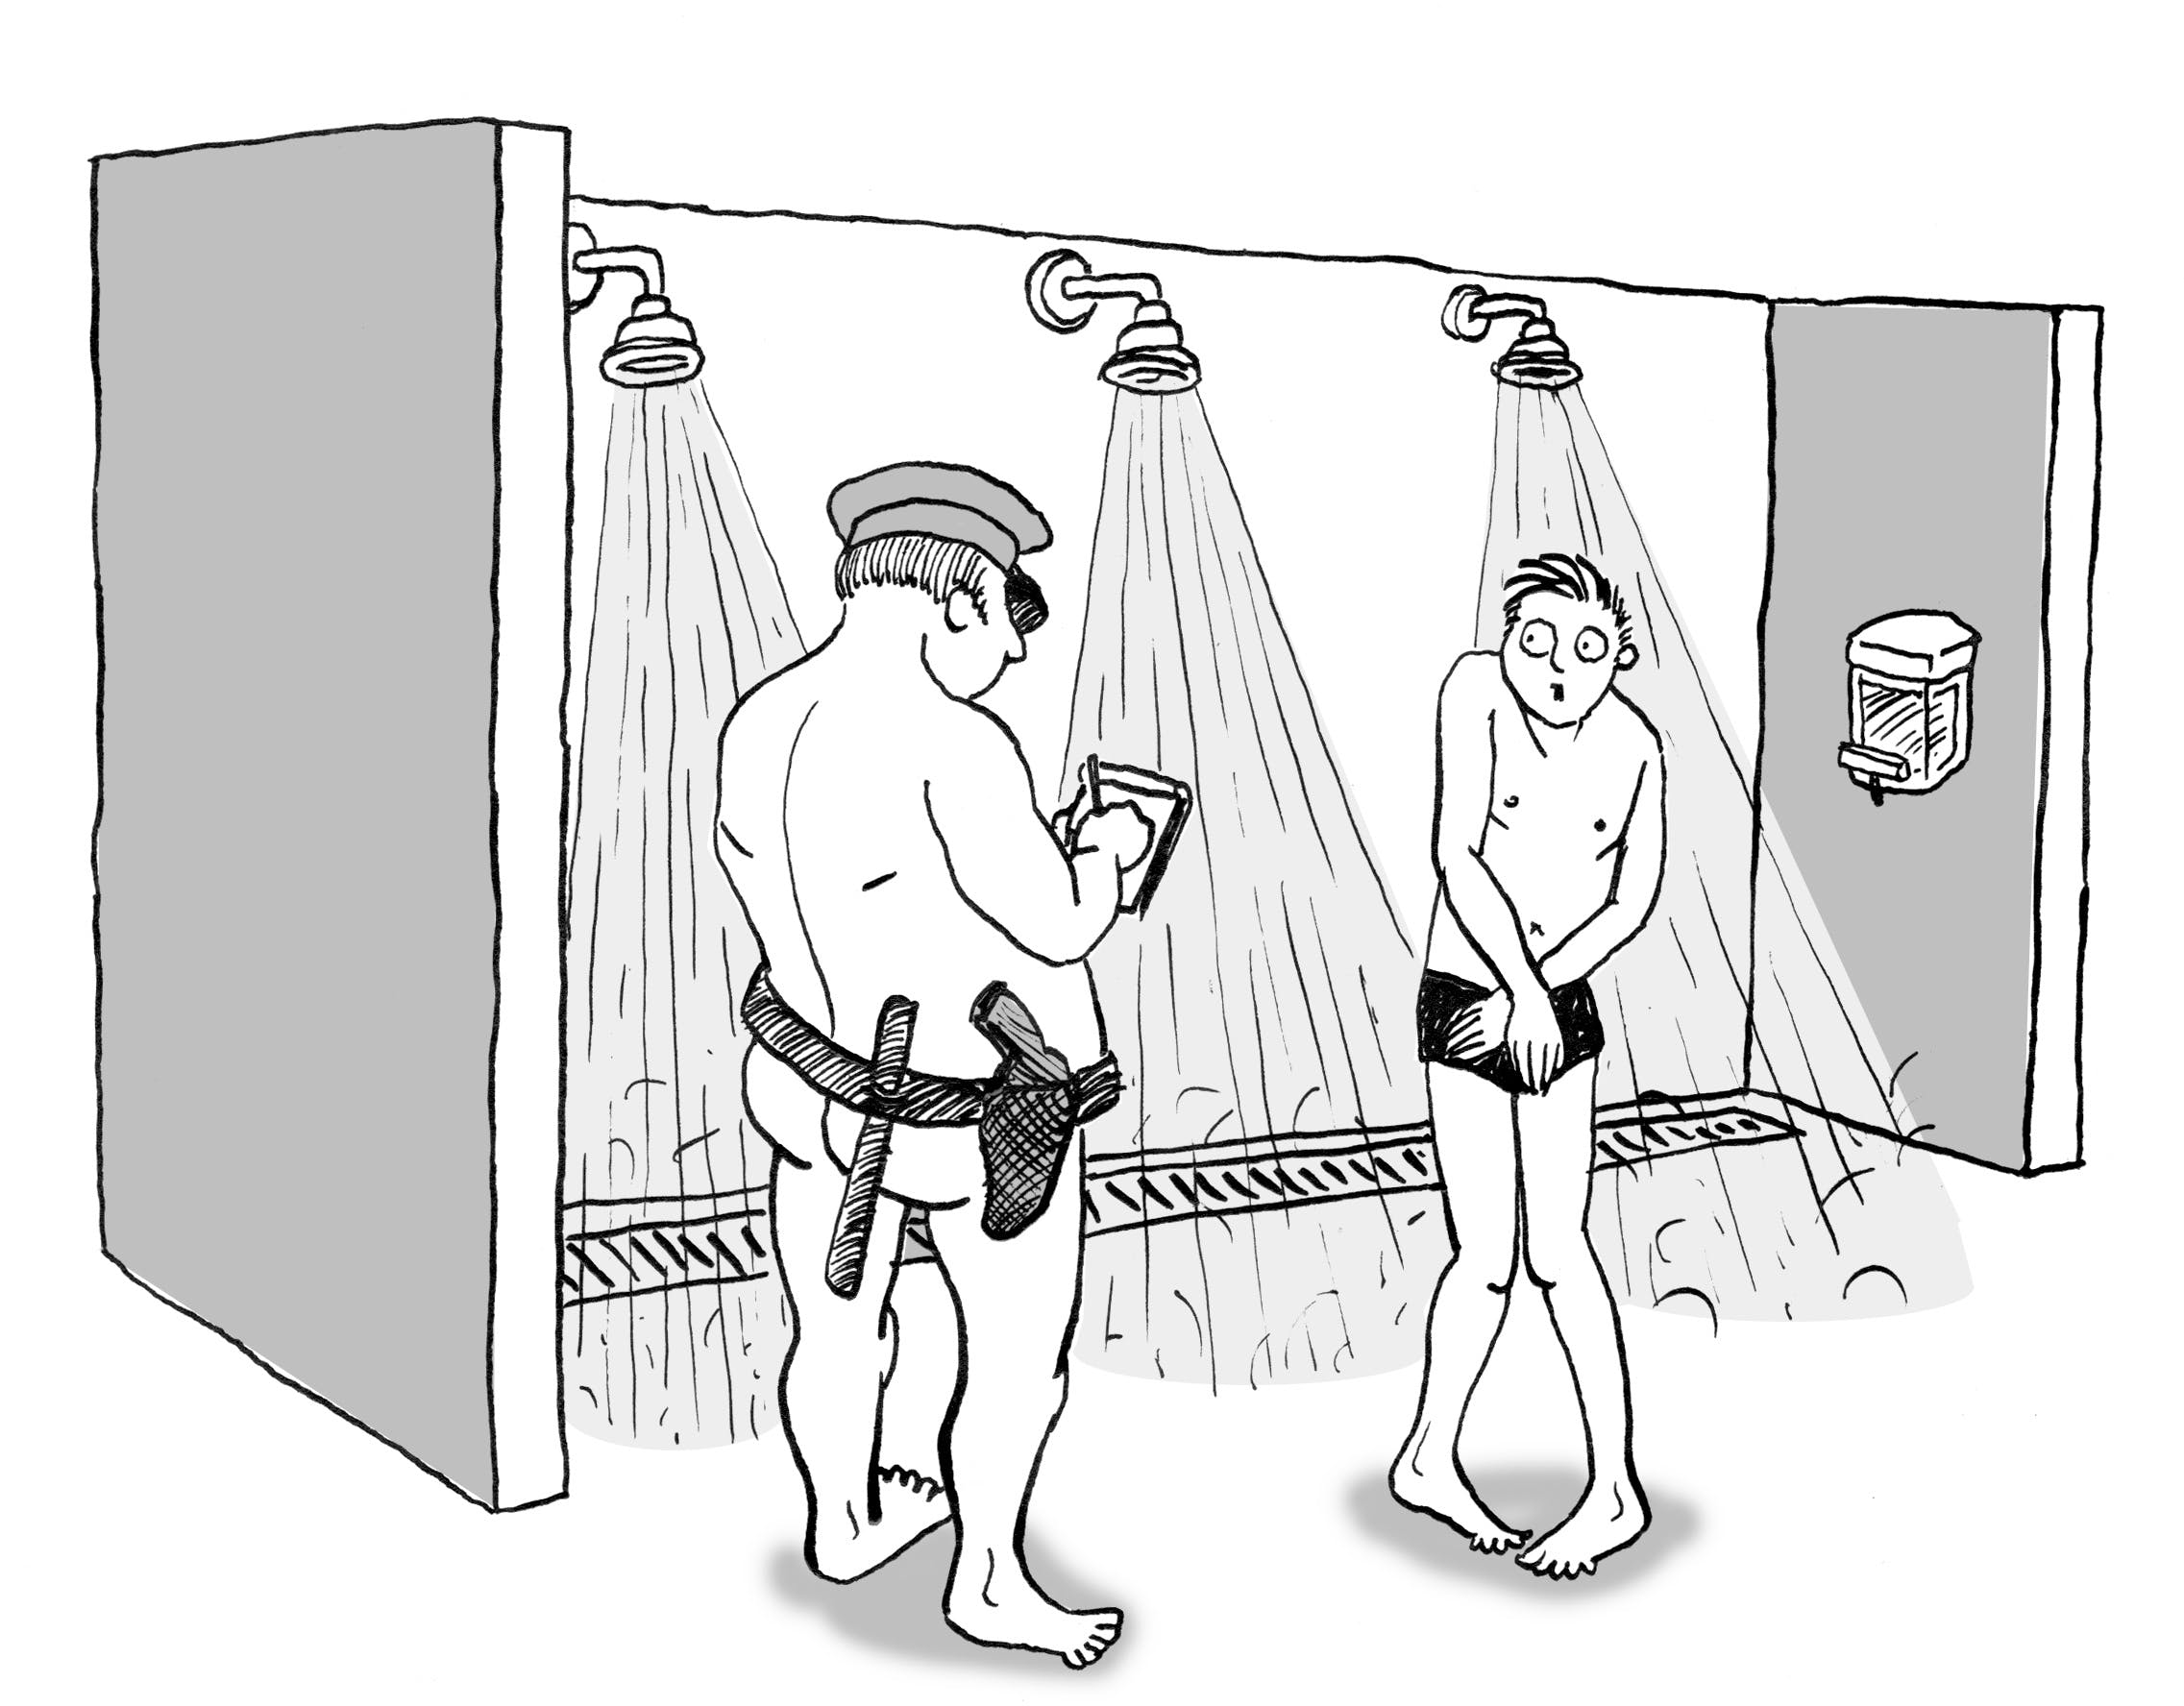 The shower police - picture from Icelandweatherreport